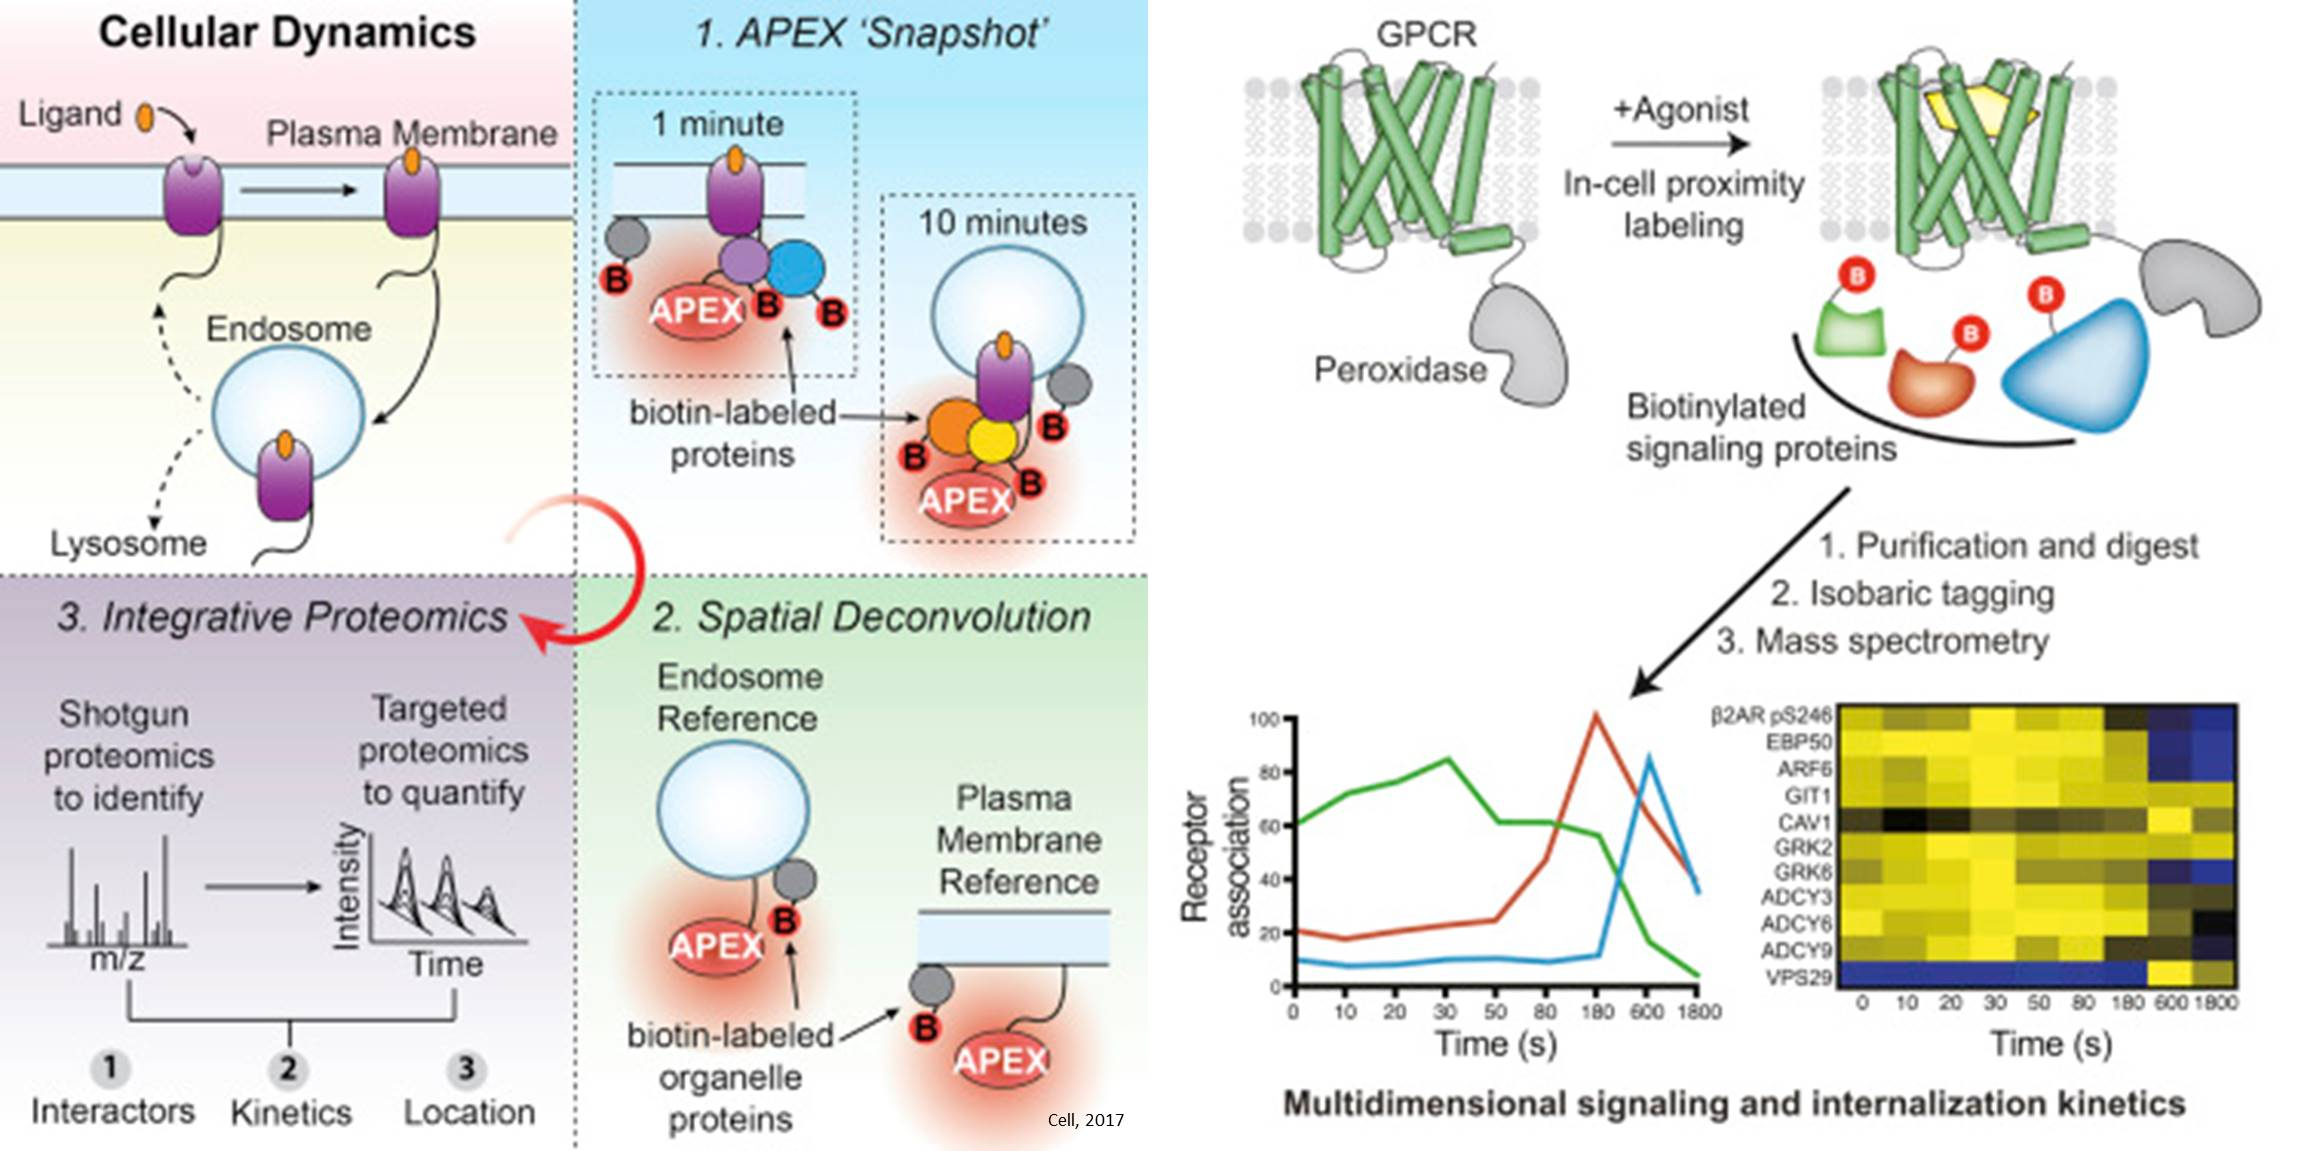 A New Technique to Spatiotemporally Resolve Protein Interaction Networks in Living Cells